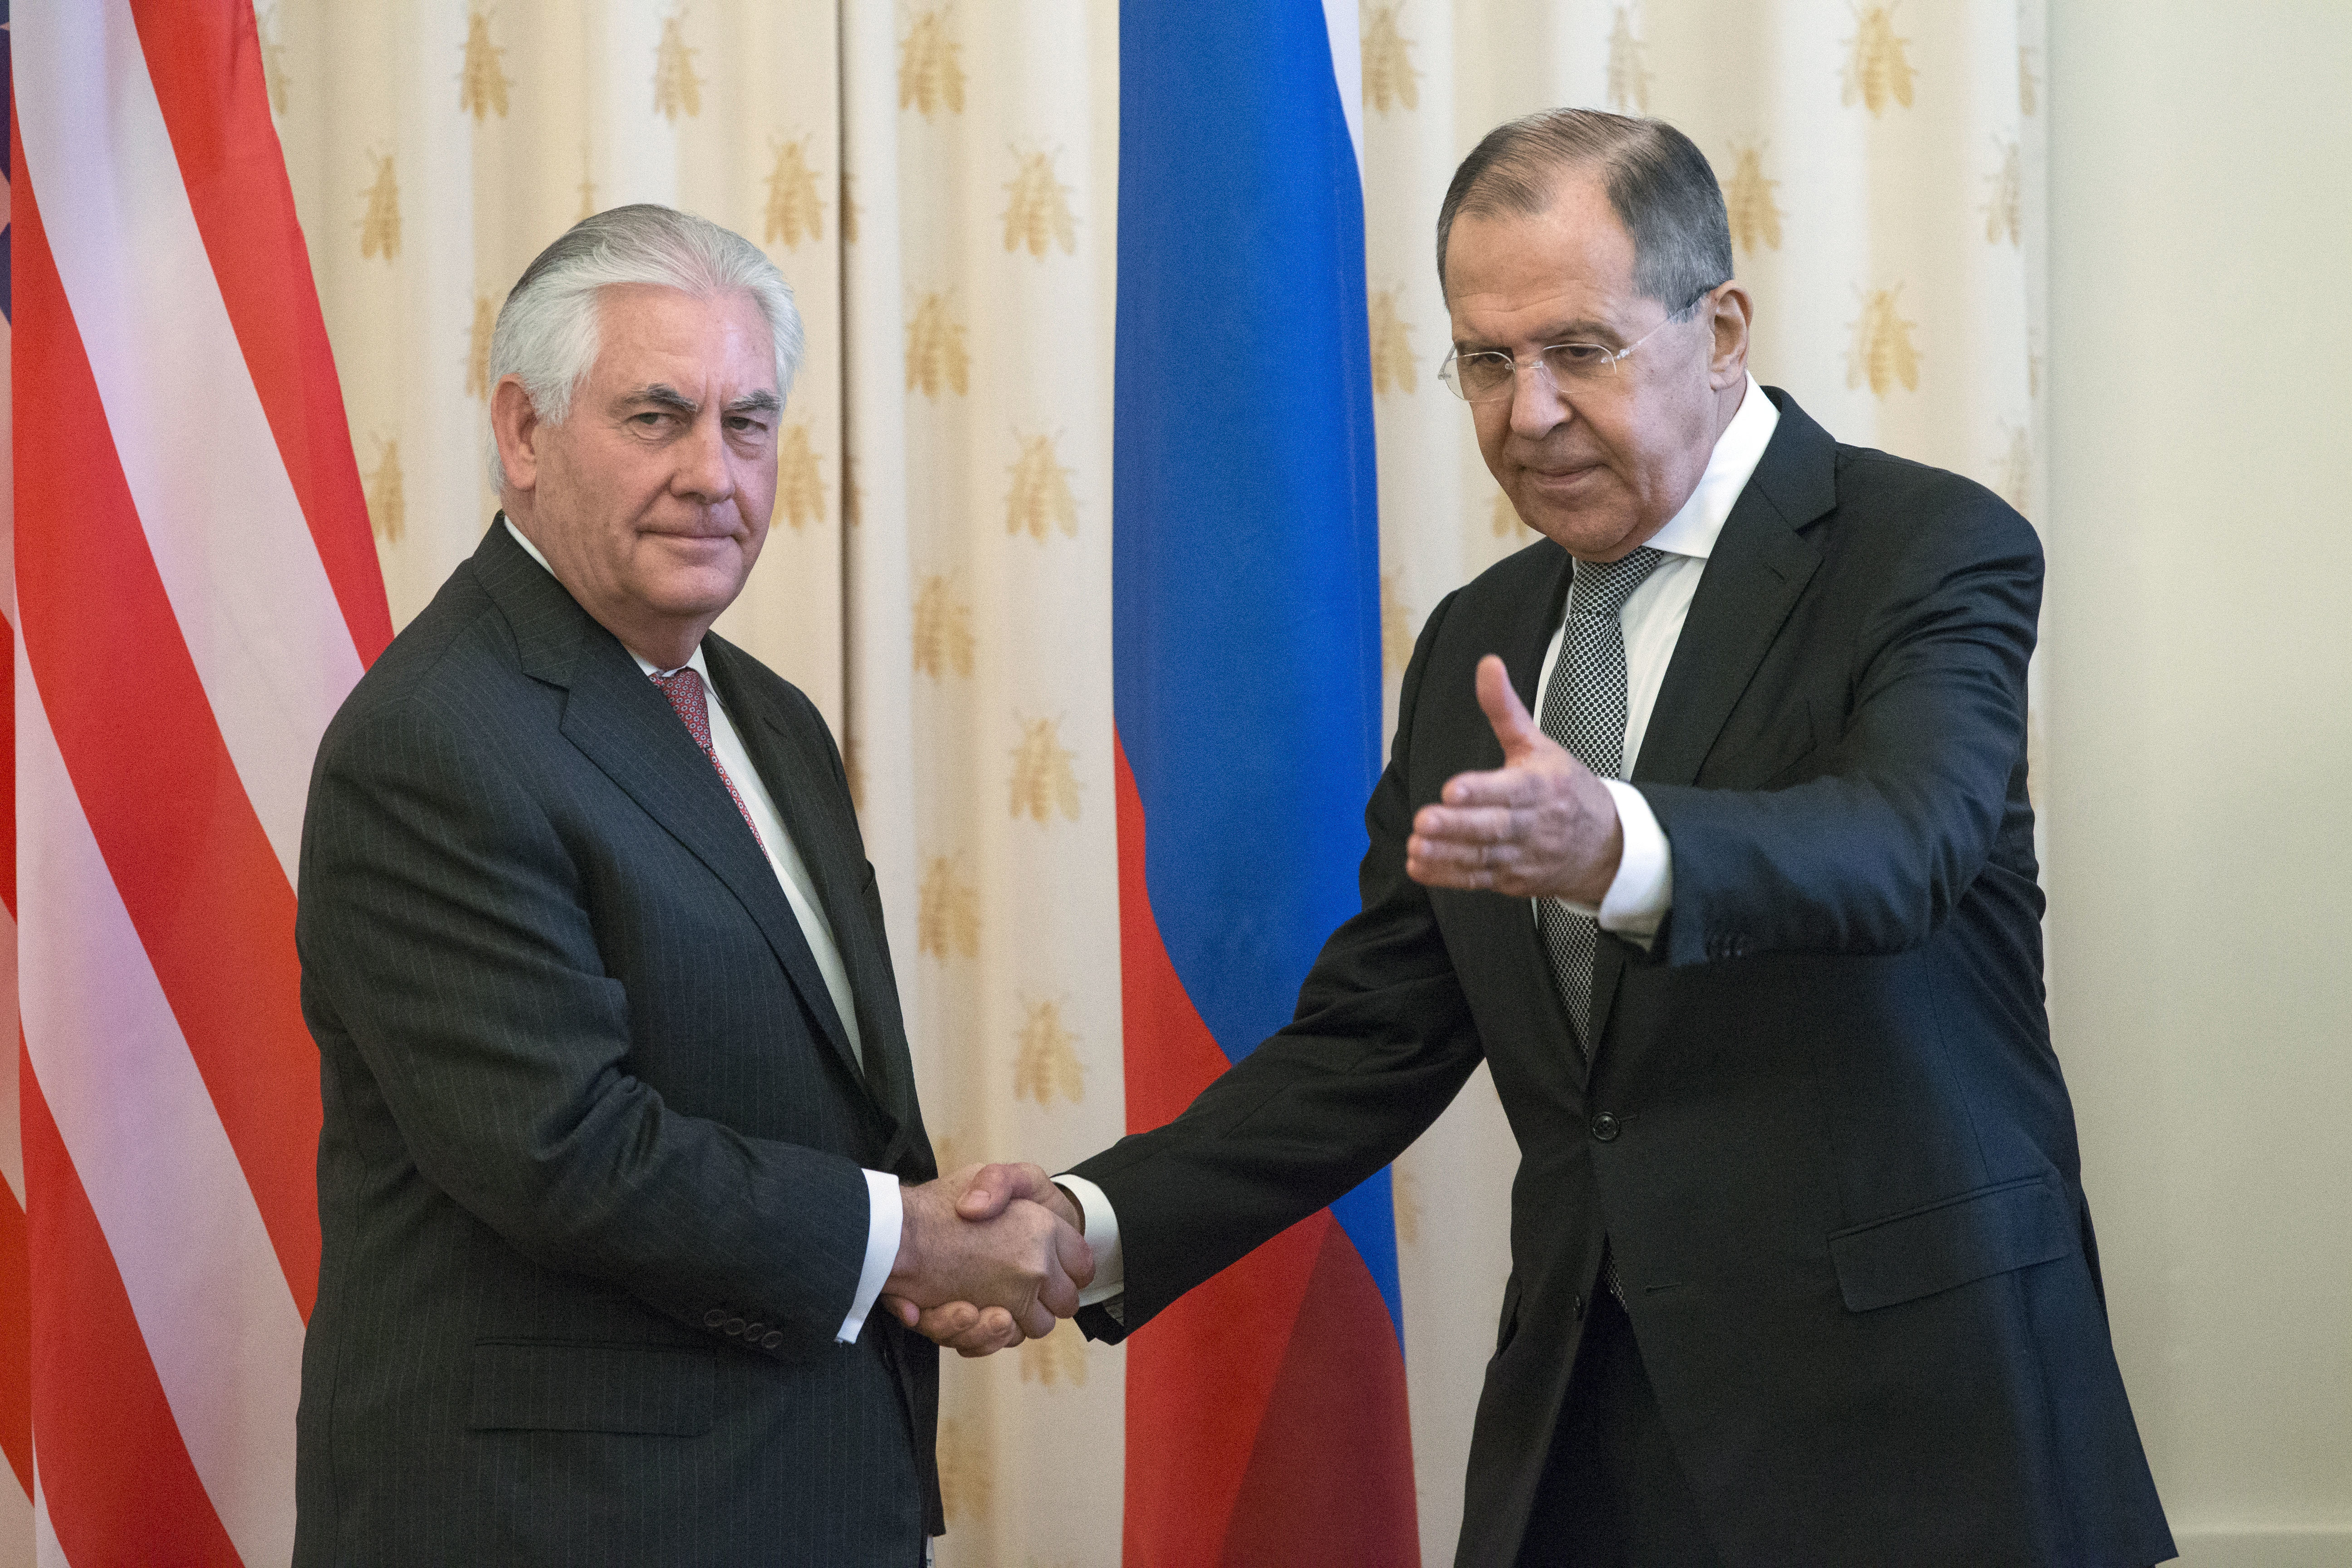 Secretary of State Rex Tillerson and Russian Foreign Minister Sergey Lavrov, shake hands prior to their talks in Moscow, Russia, April 12, 2017.